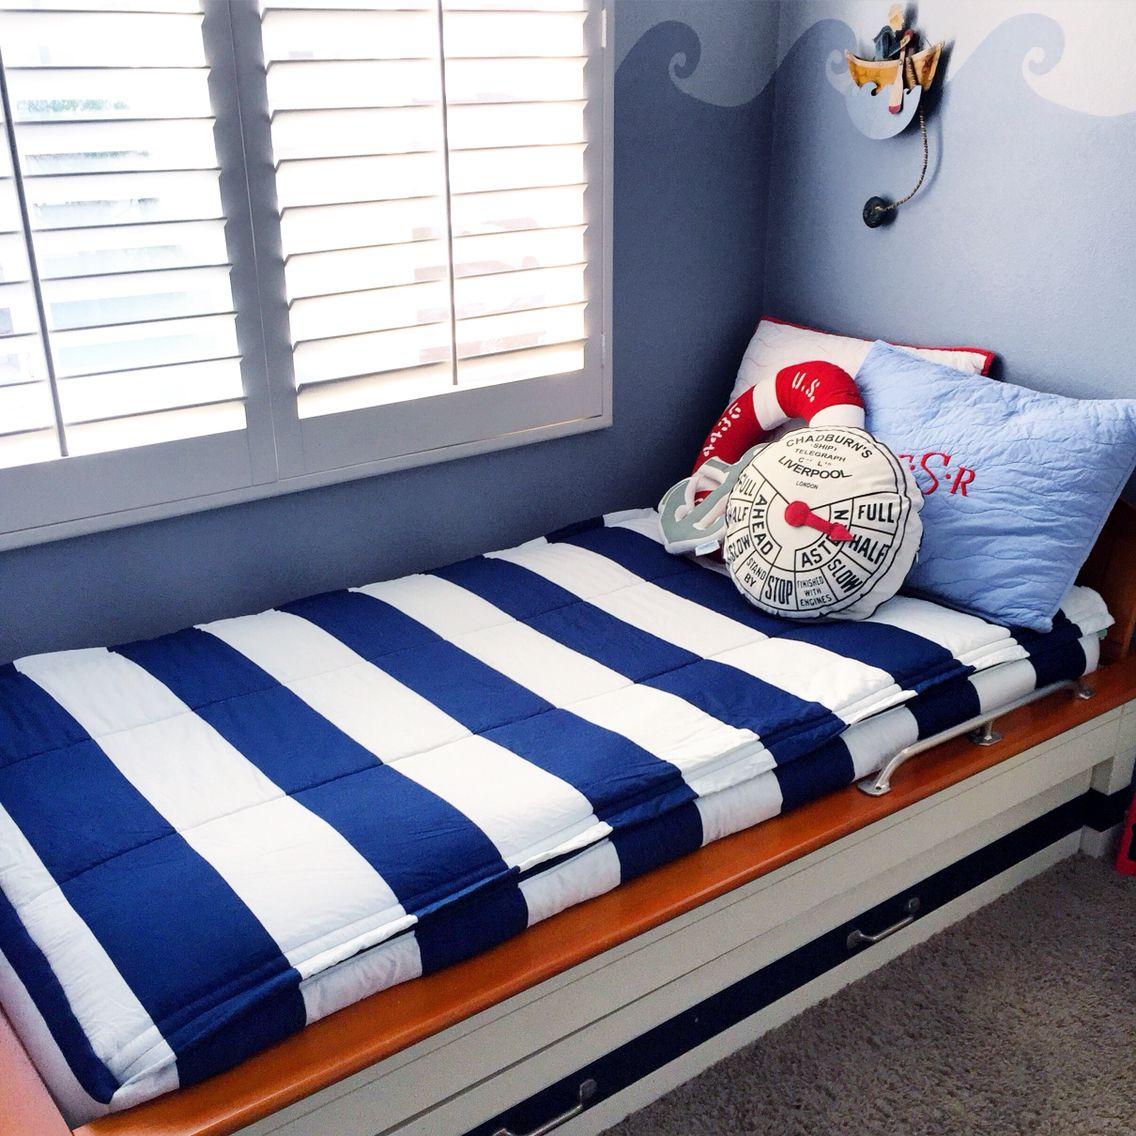 Beddy\'s bedding is perfect for this Pottery Barn boat bed. Love the ...